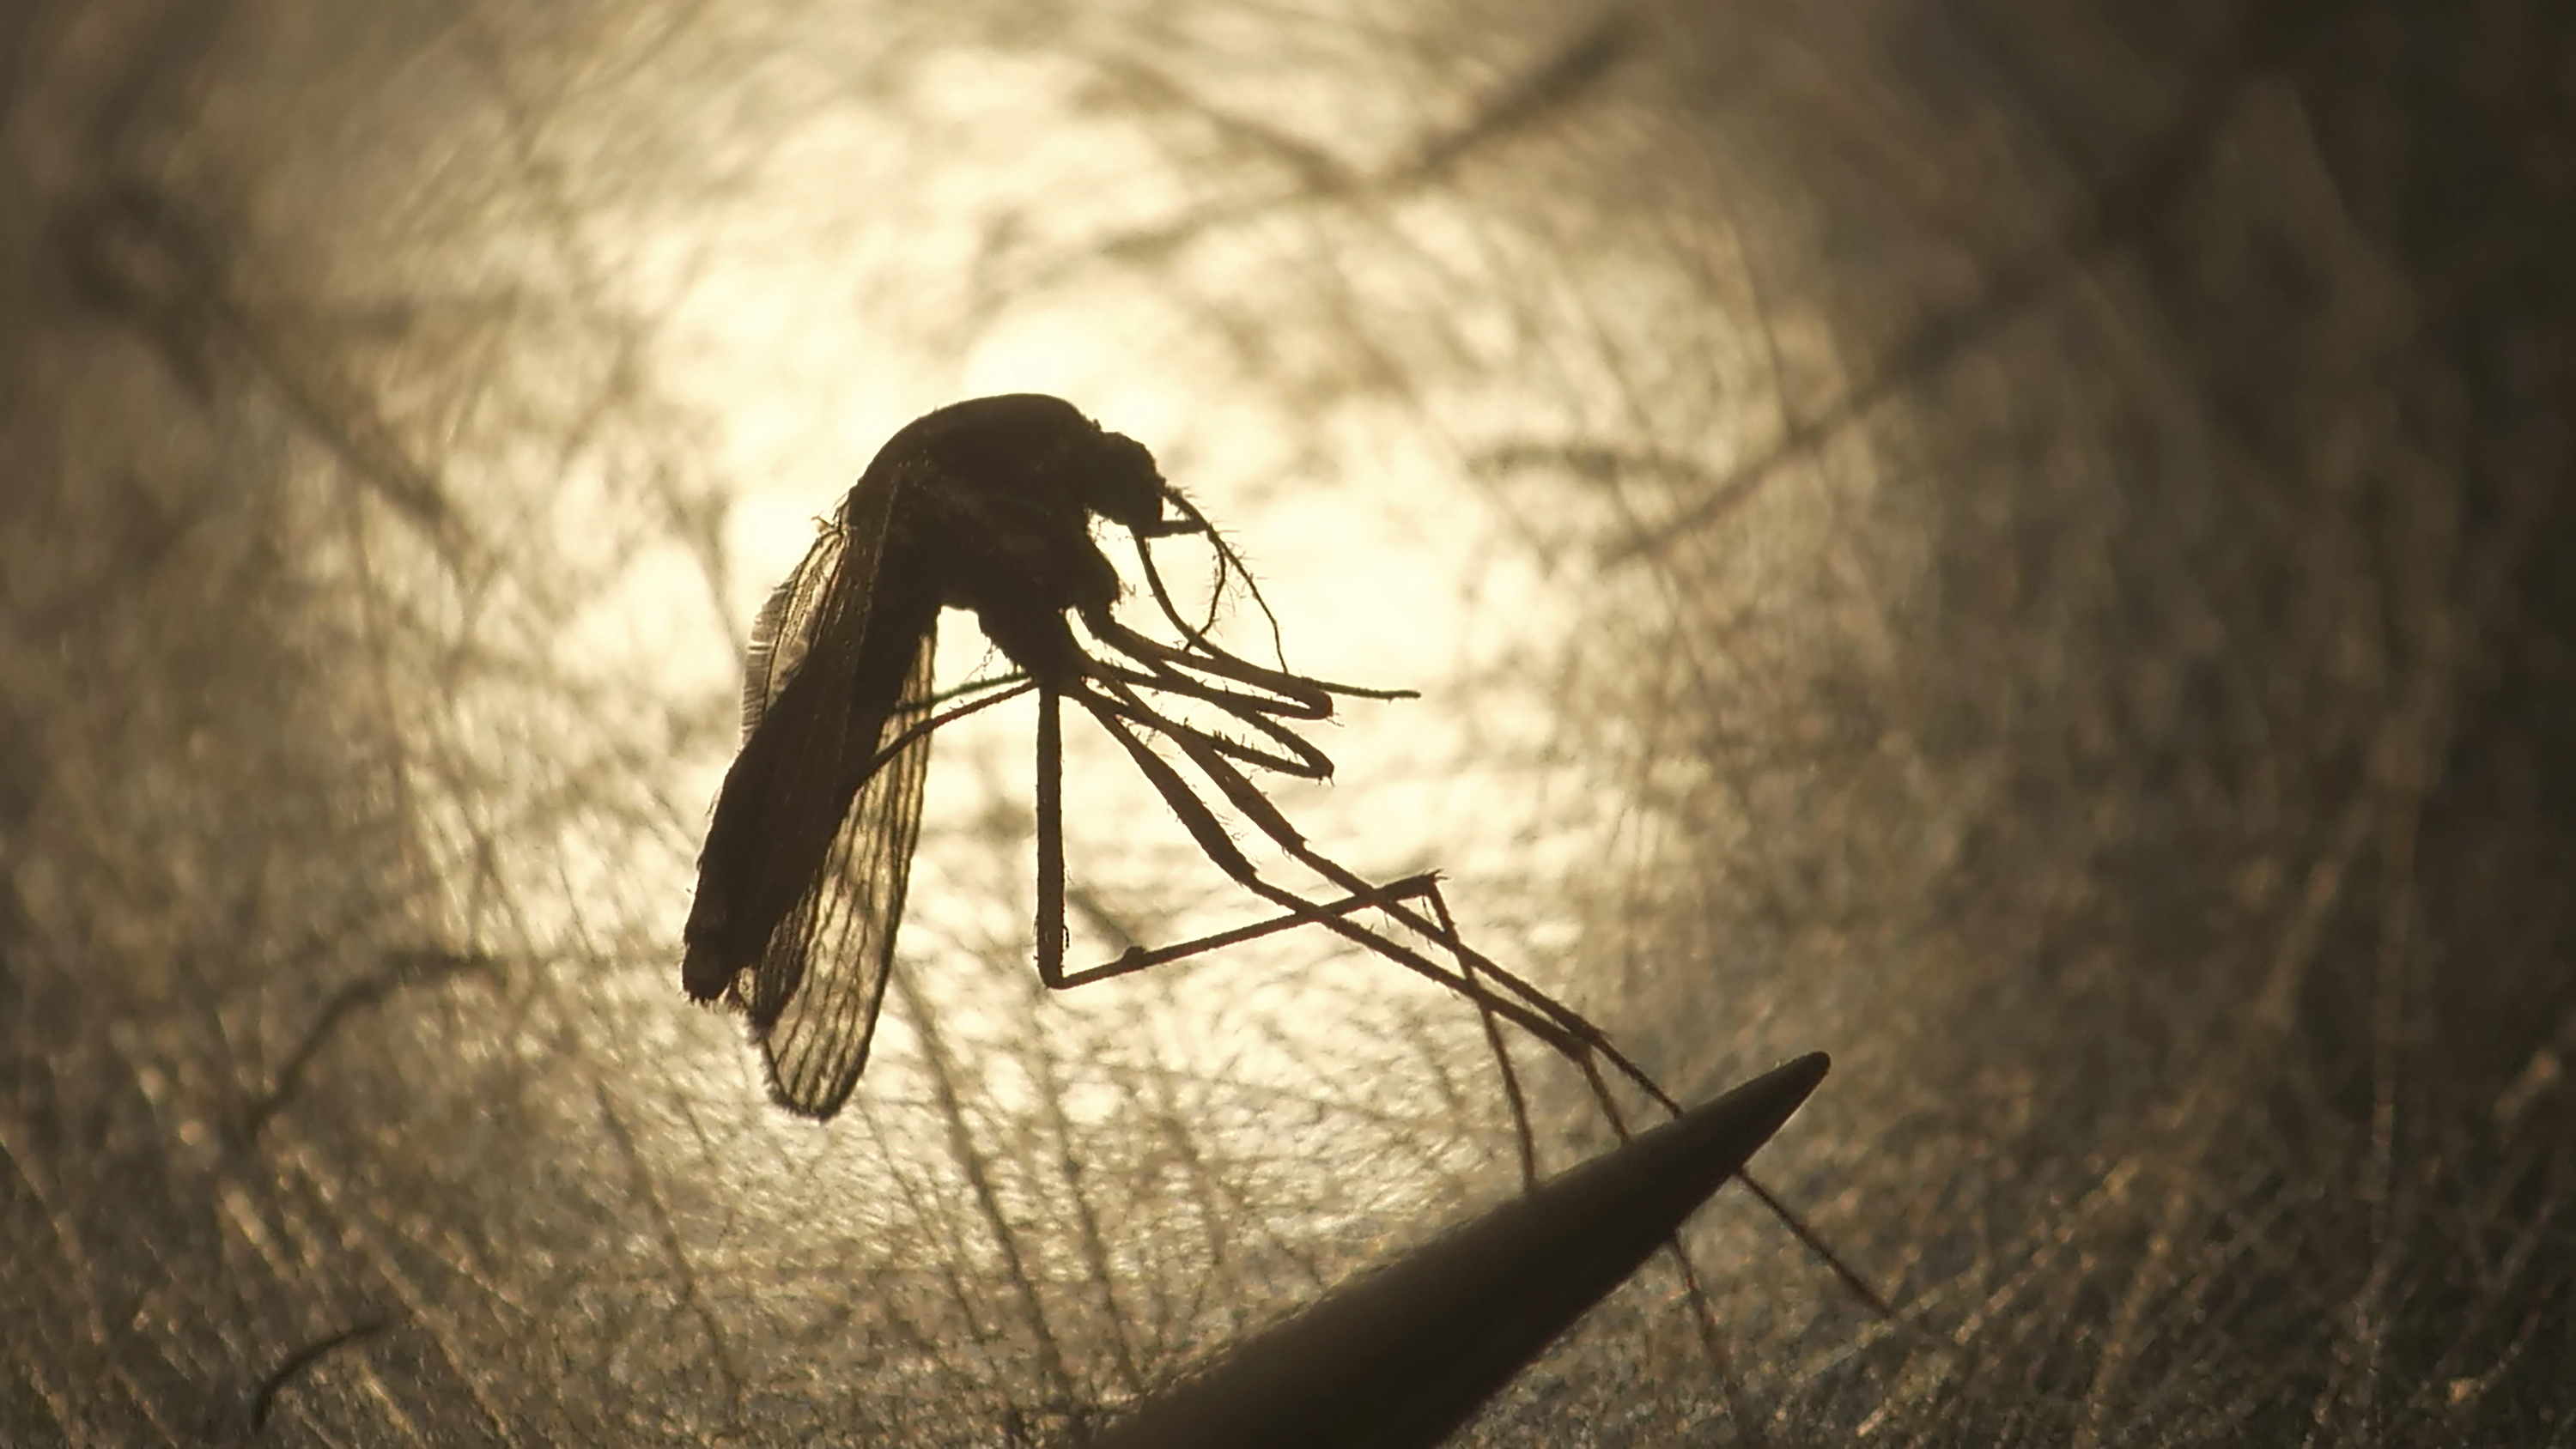 To Stop Diseases Like West Nile Wsu Scientists Are Feeding Blood